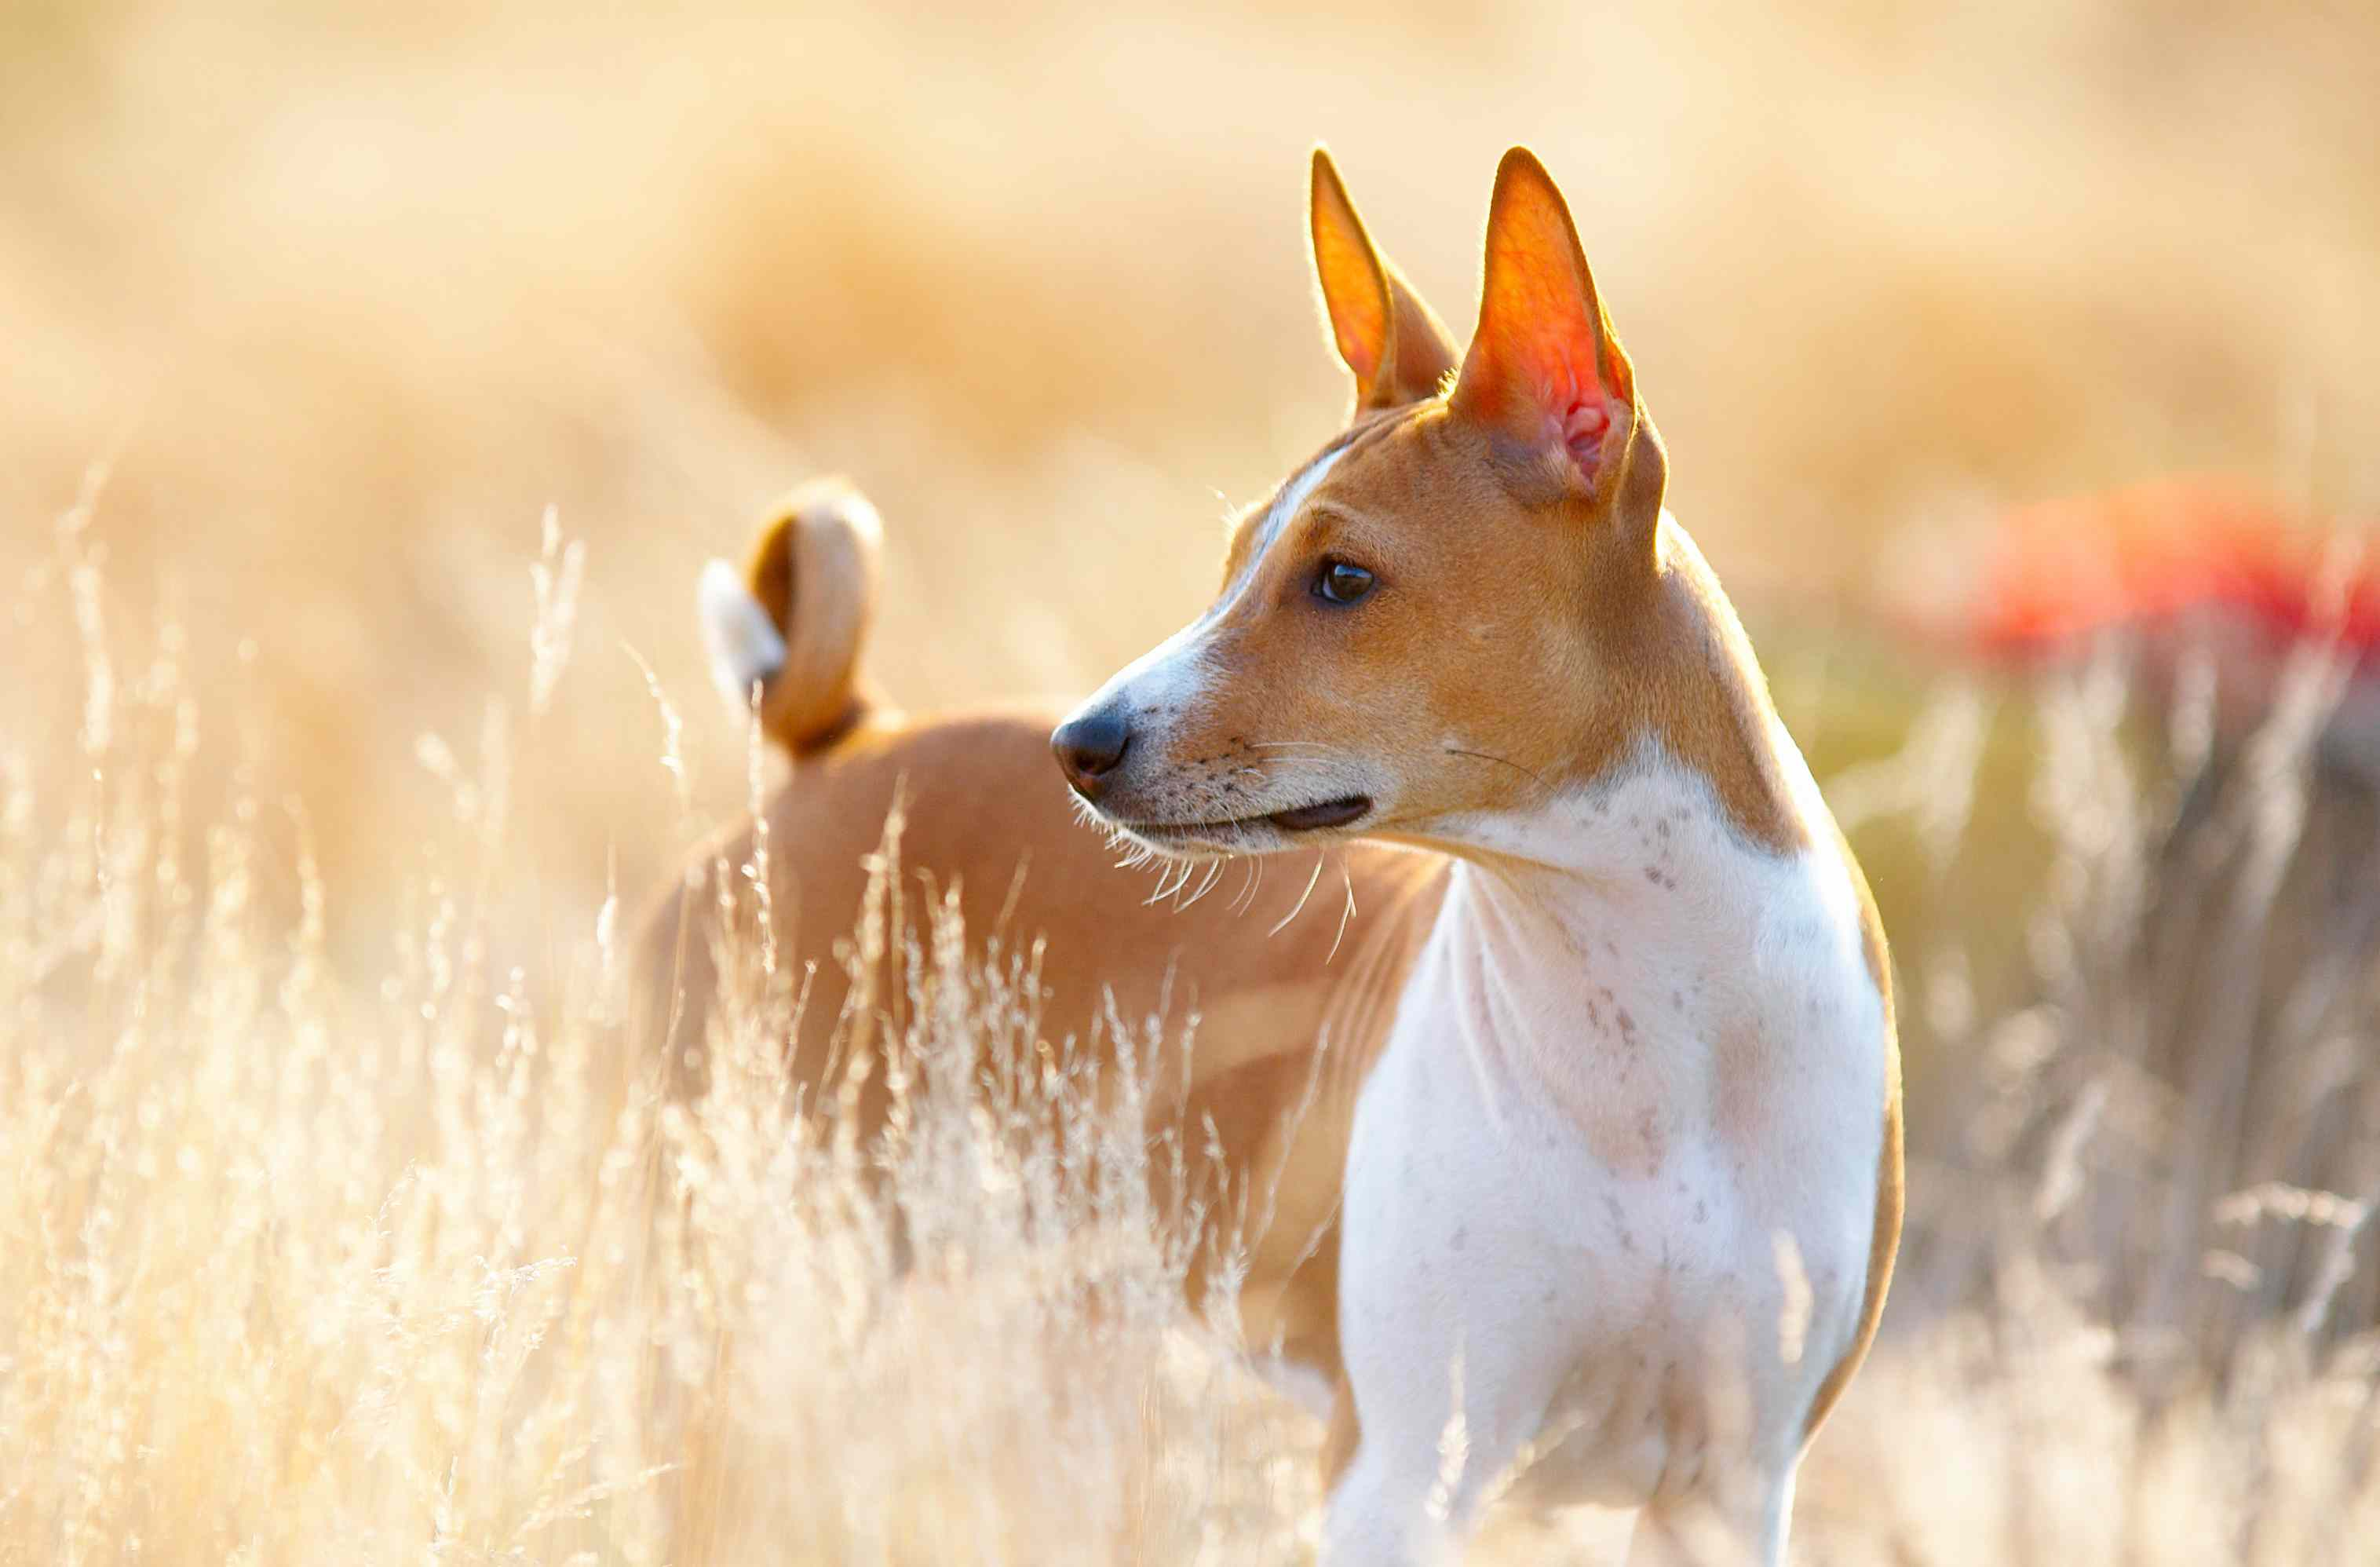 A brown and white dog standing in a wheat field.